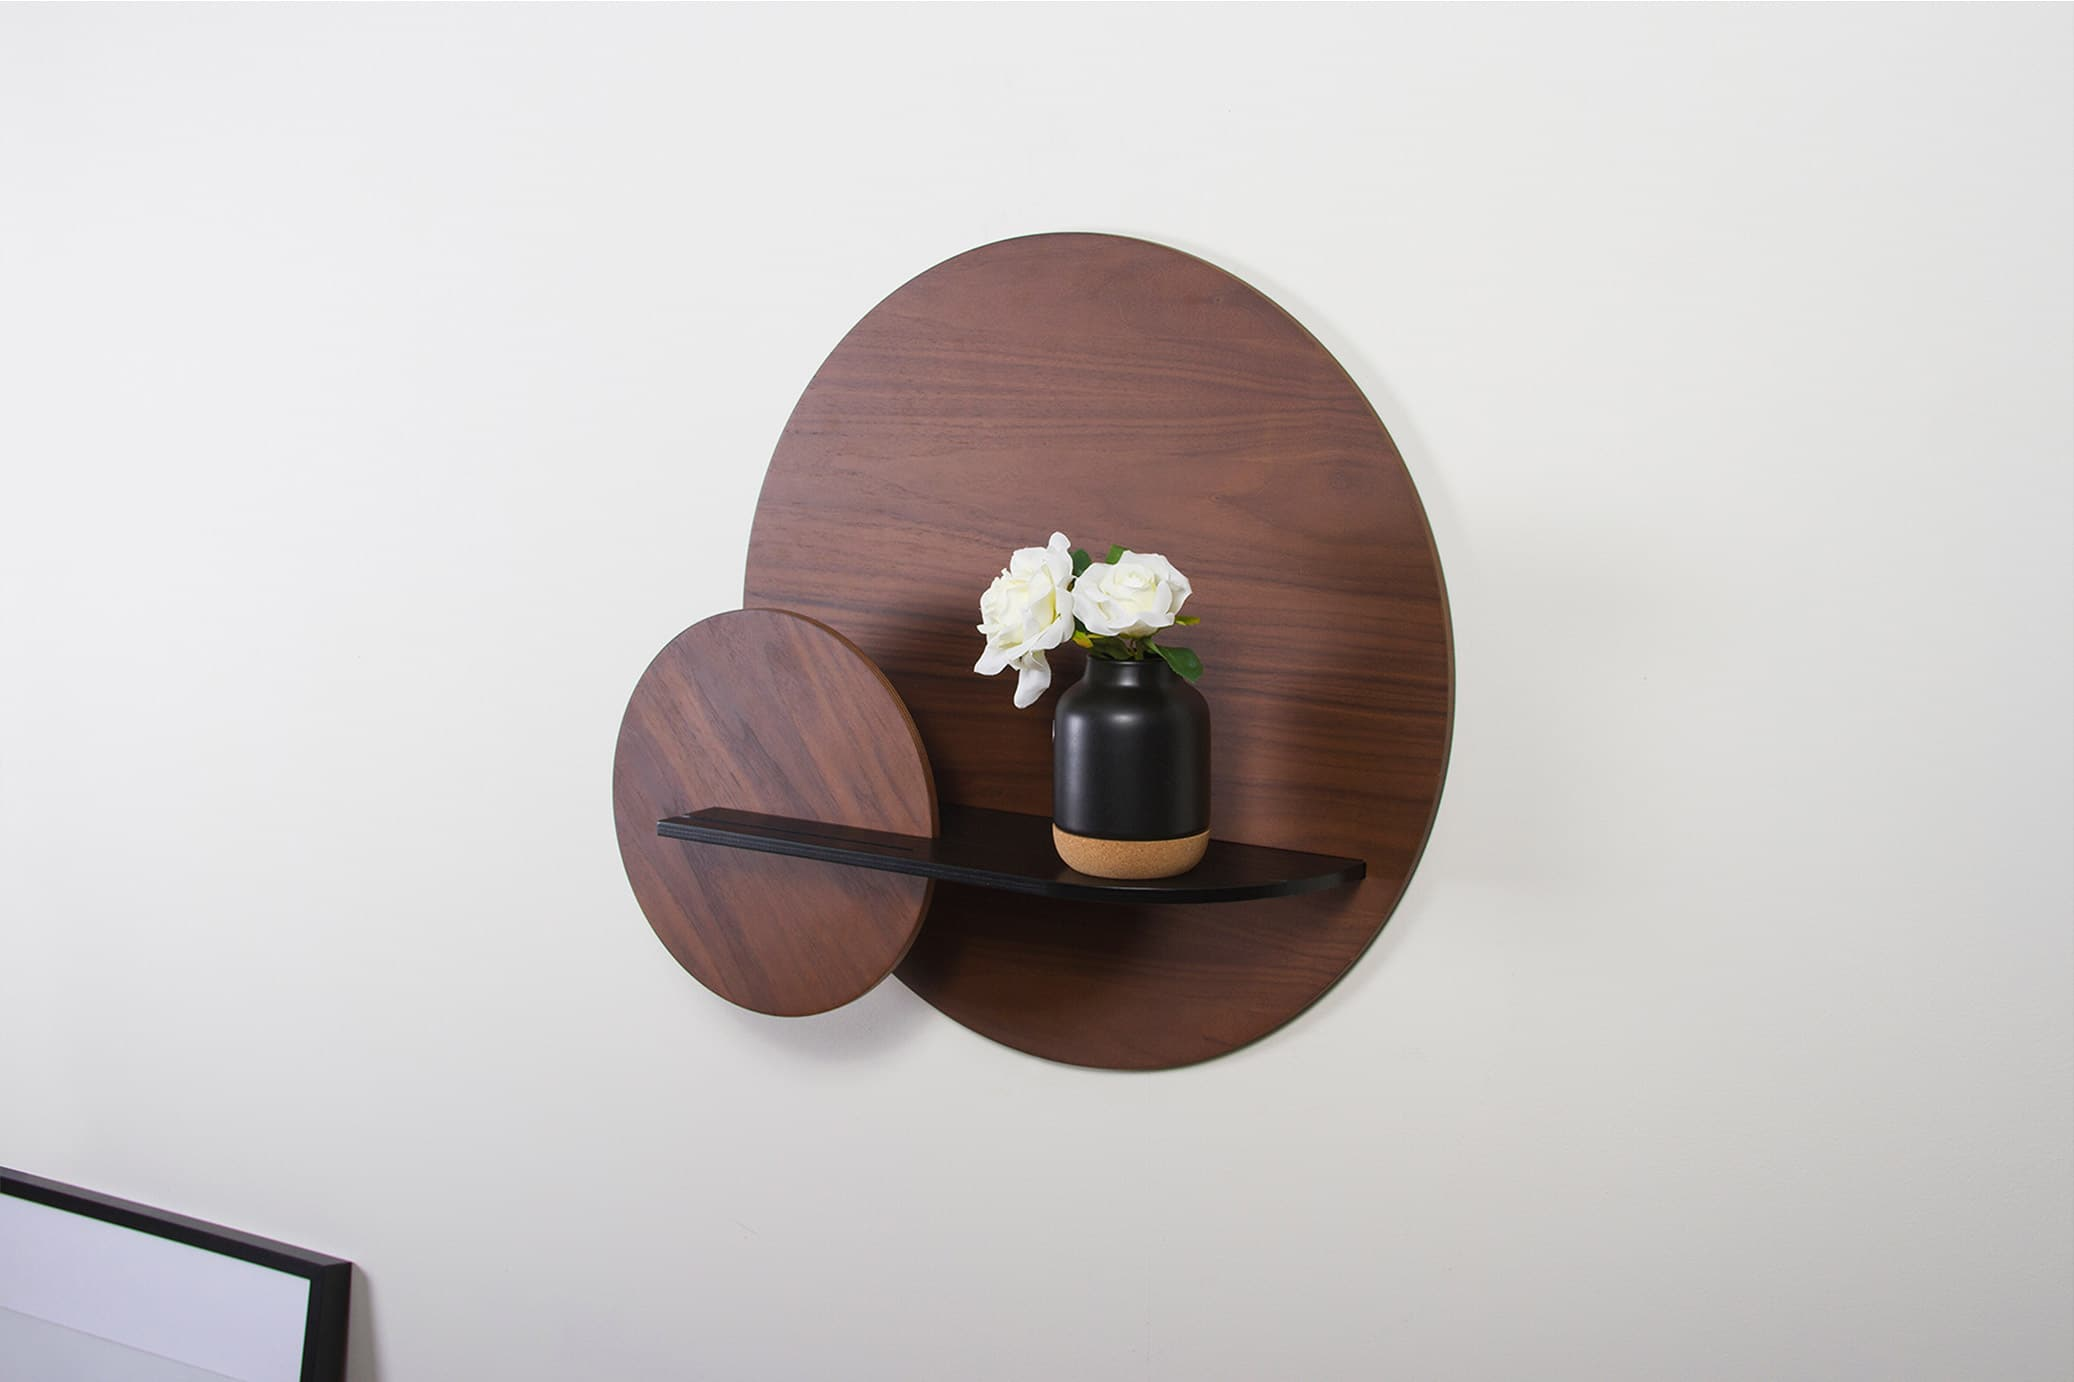 alba m wall shelf decor modular custom